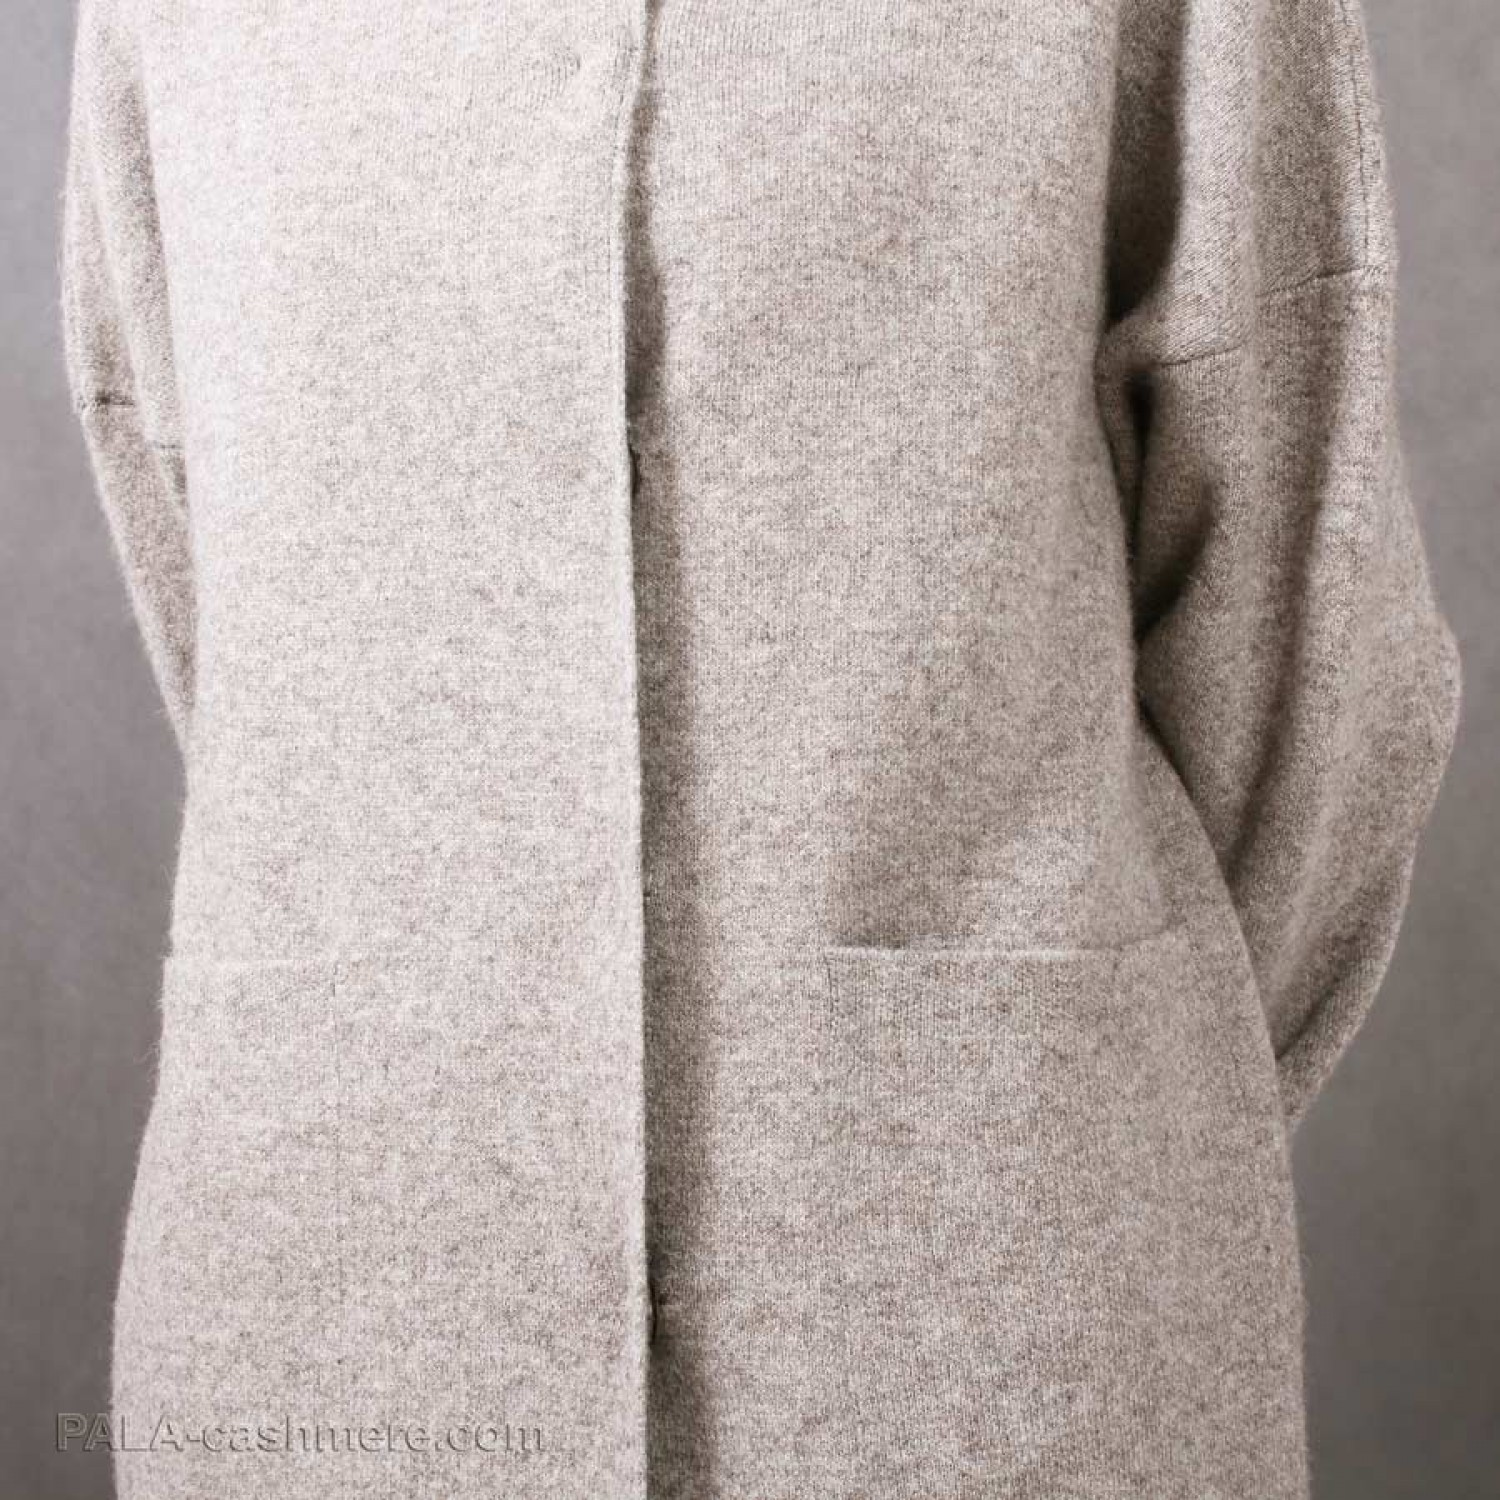 Women's coat of yak and sheep's wool on buttons